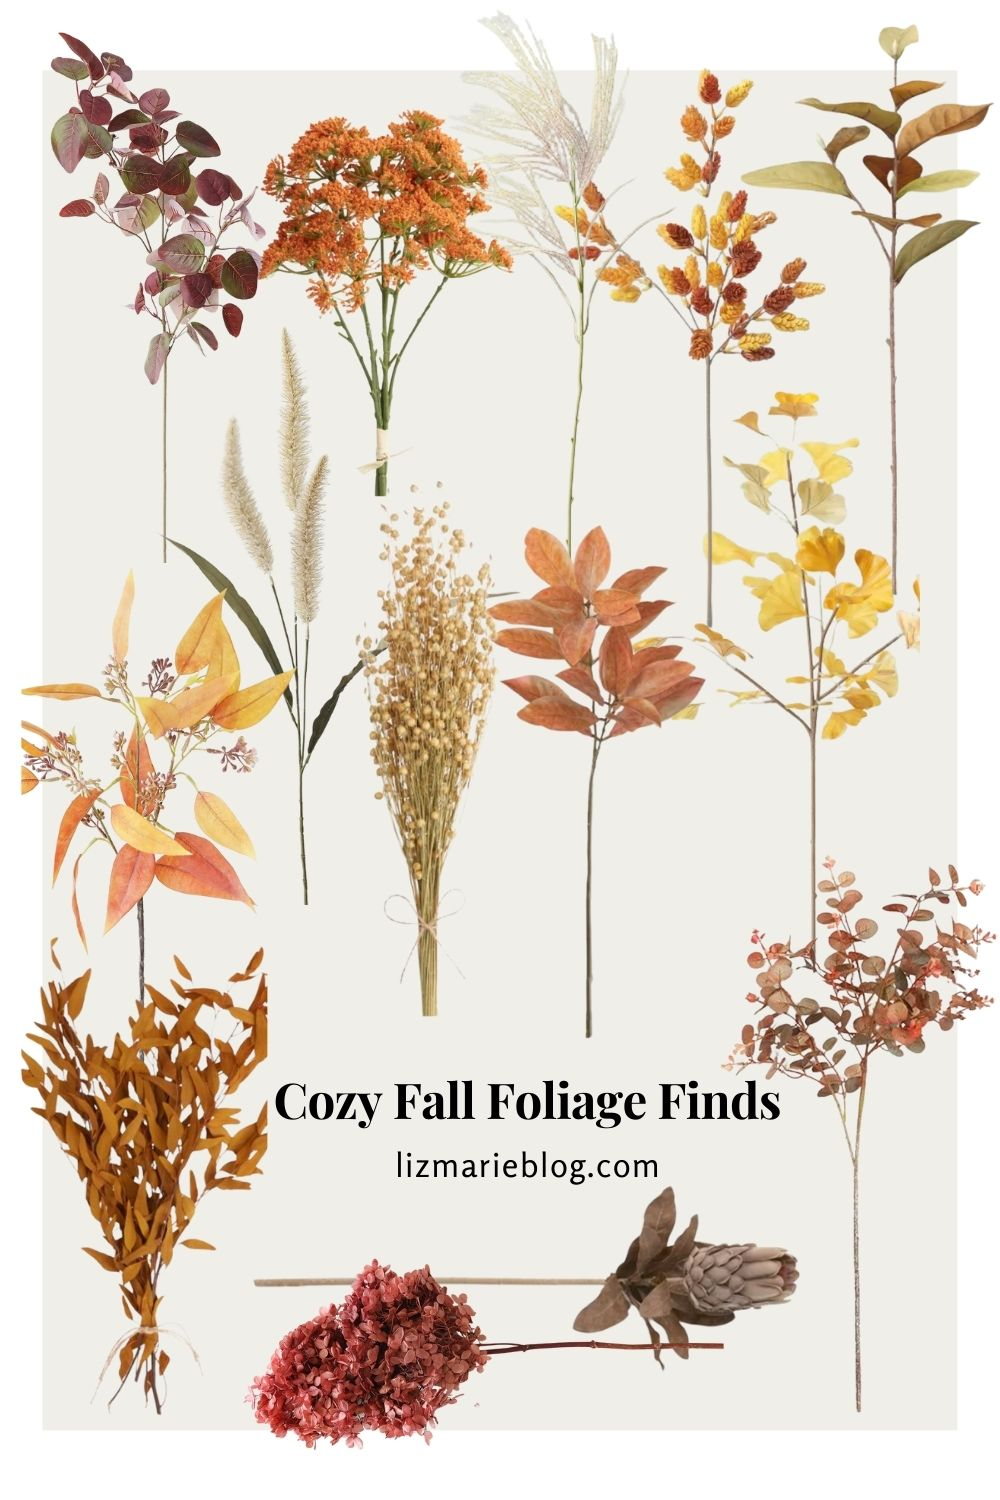 Cozy Fall Foliage Finds